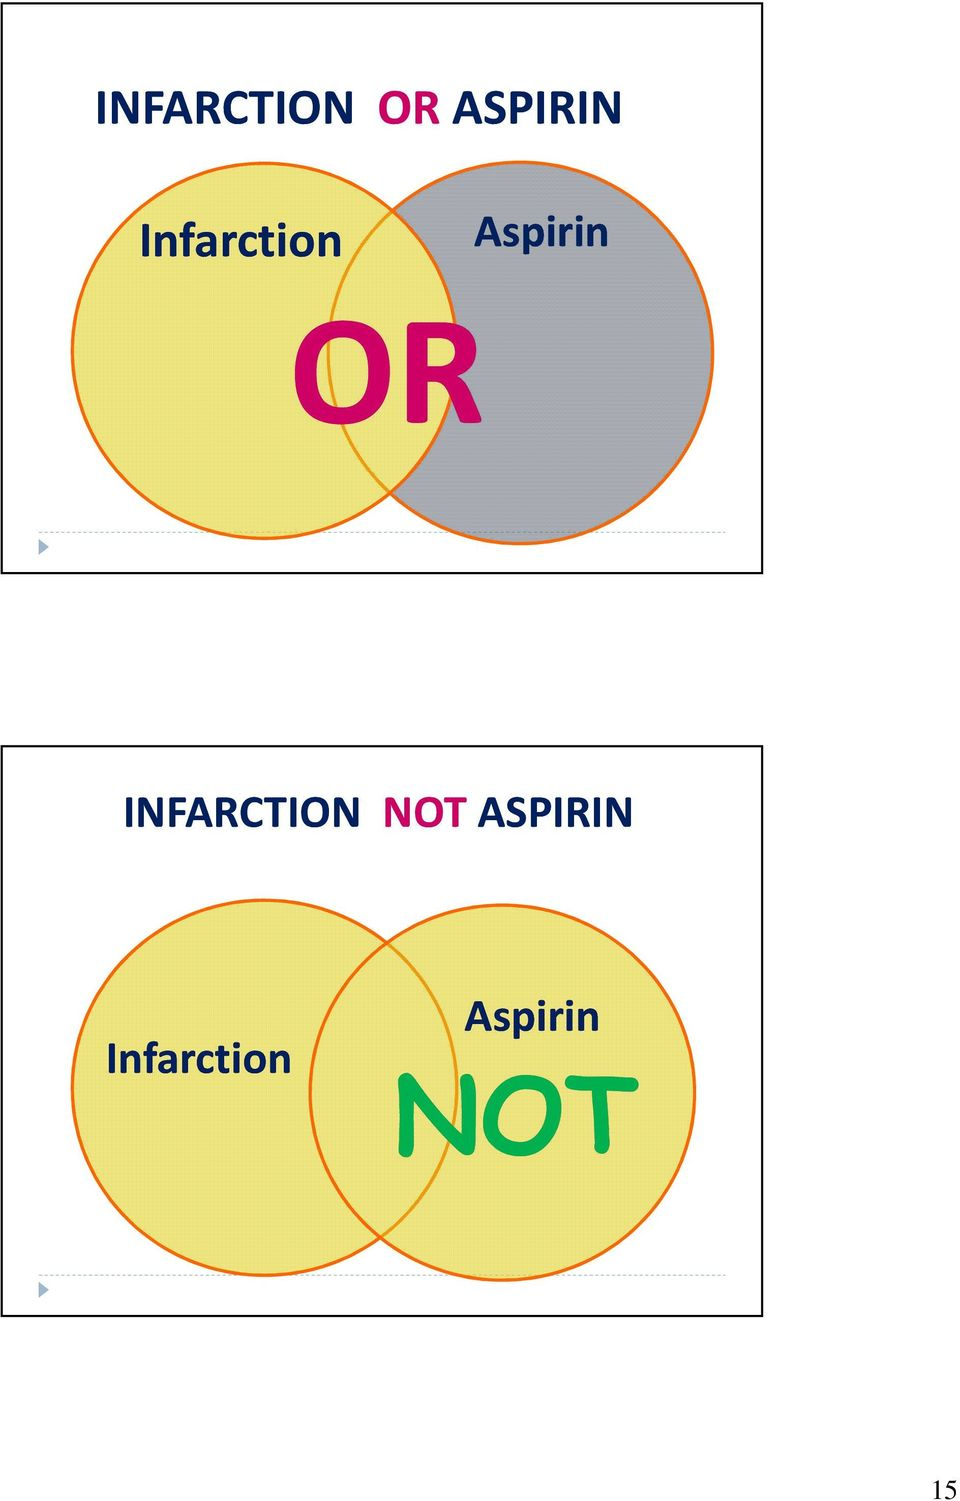 INFARCTION NOT ASPIRIN